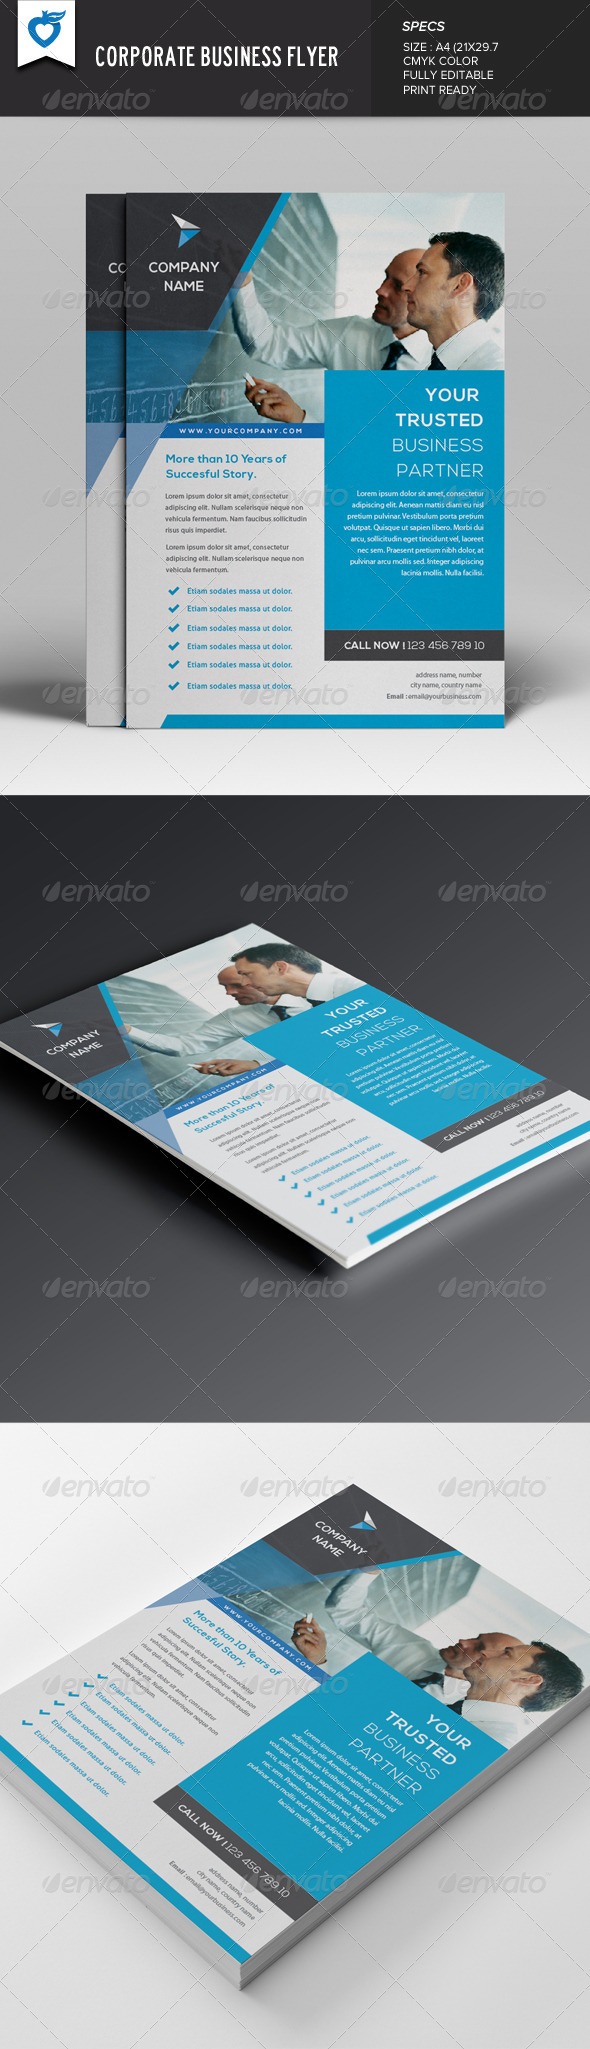 GraphicRiver Corporate Business Flyer 7649495